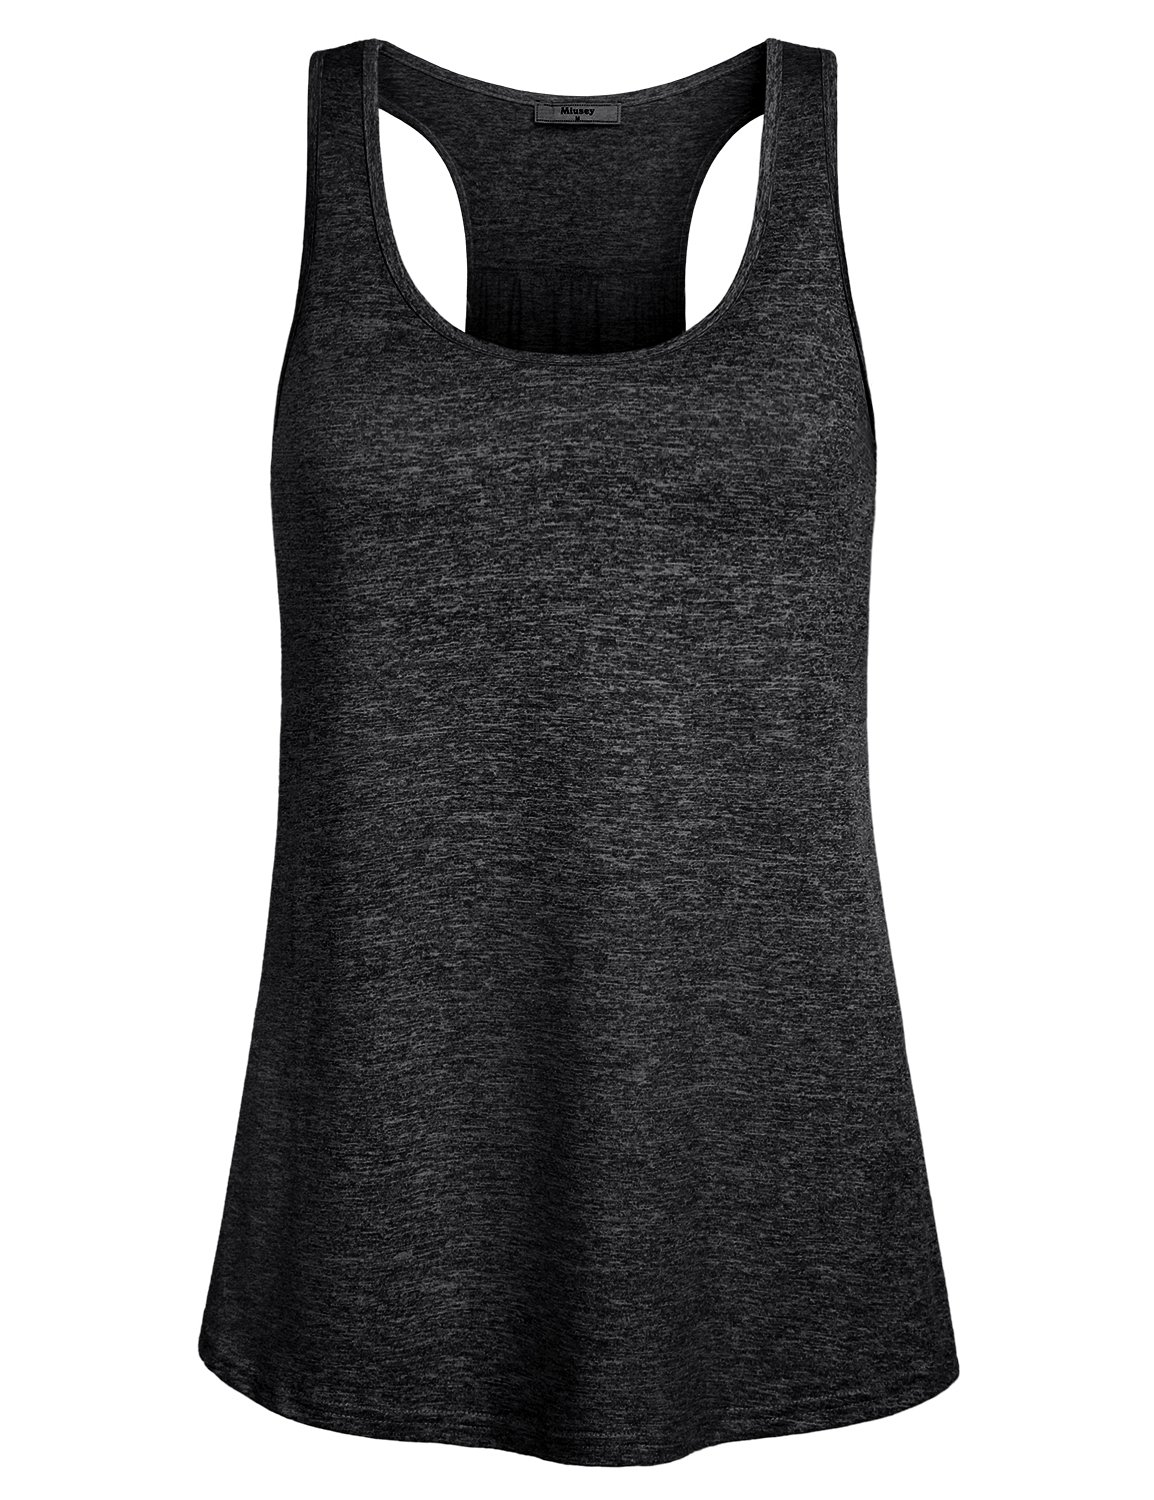 Miusey Tank Tops for Women Juniors Sleeveless Loose Fit Flowy Fitness Summer Activewear Running Yoga Workout Racerback in Sports Shirts Black M